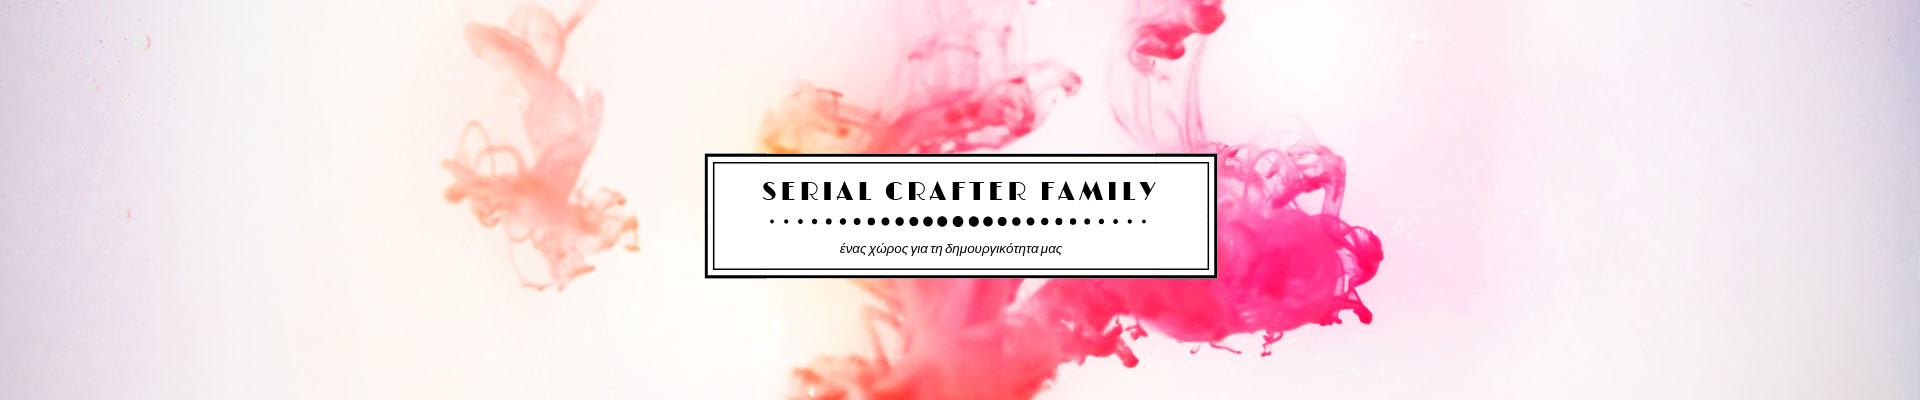 Serial Crafter Family - creative space in the midst of our lovely family chaos